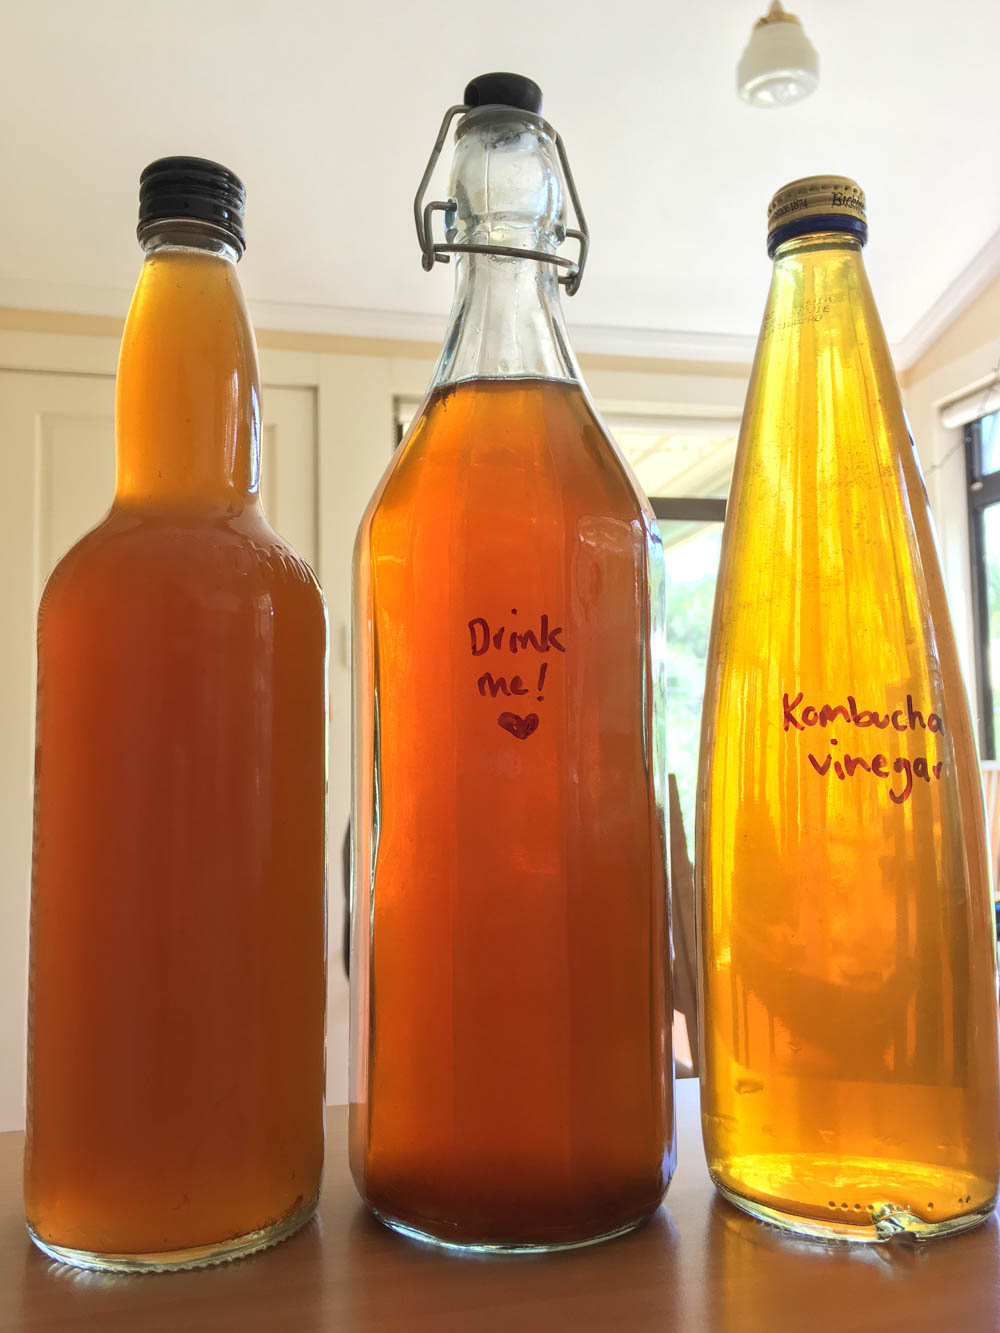 Storing kombucha vinegar for future use.